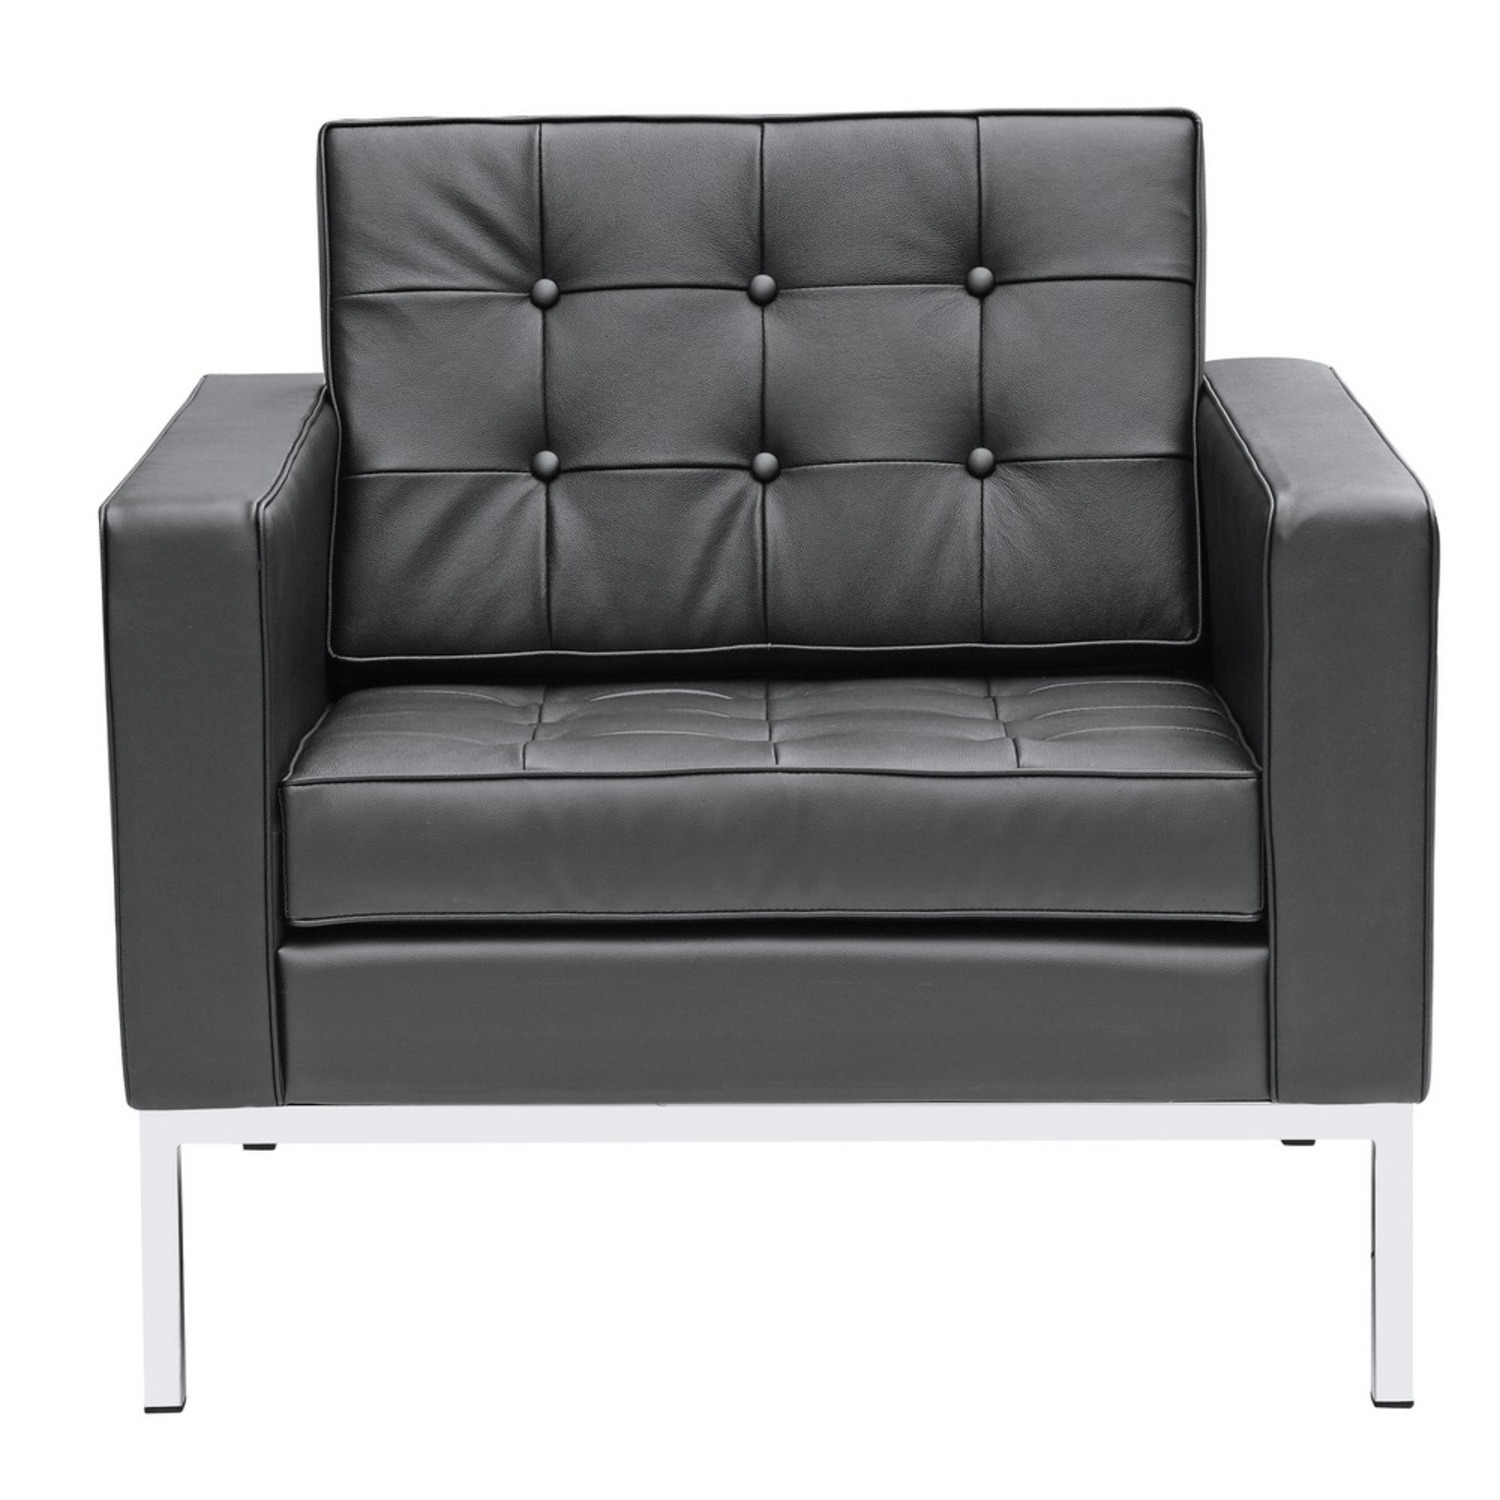 Modern Arm Chair In Black Italian Leather - image-5